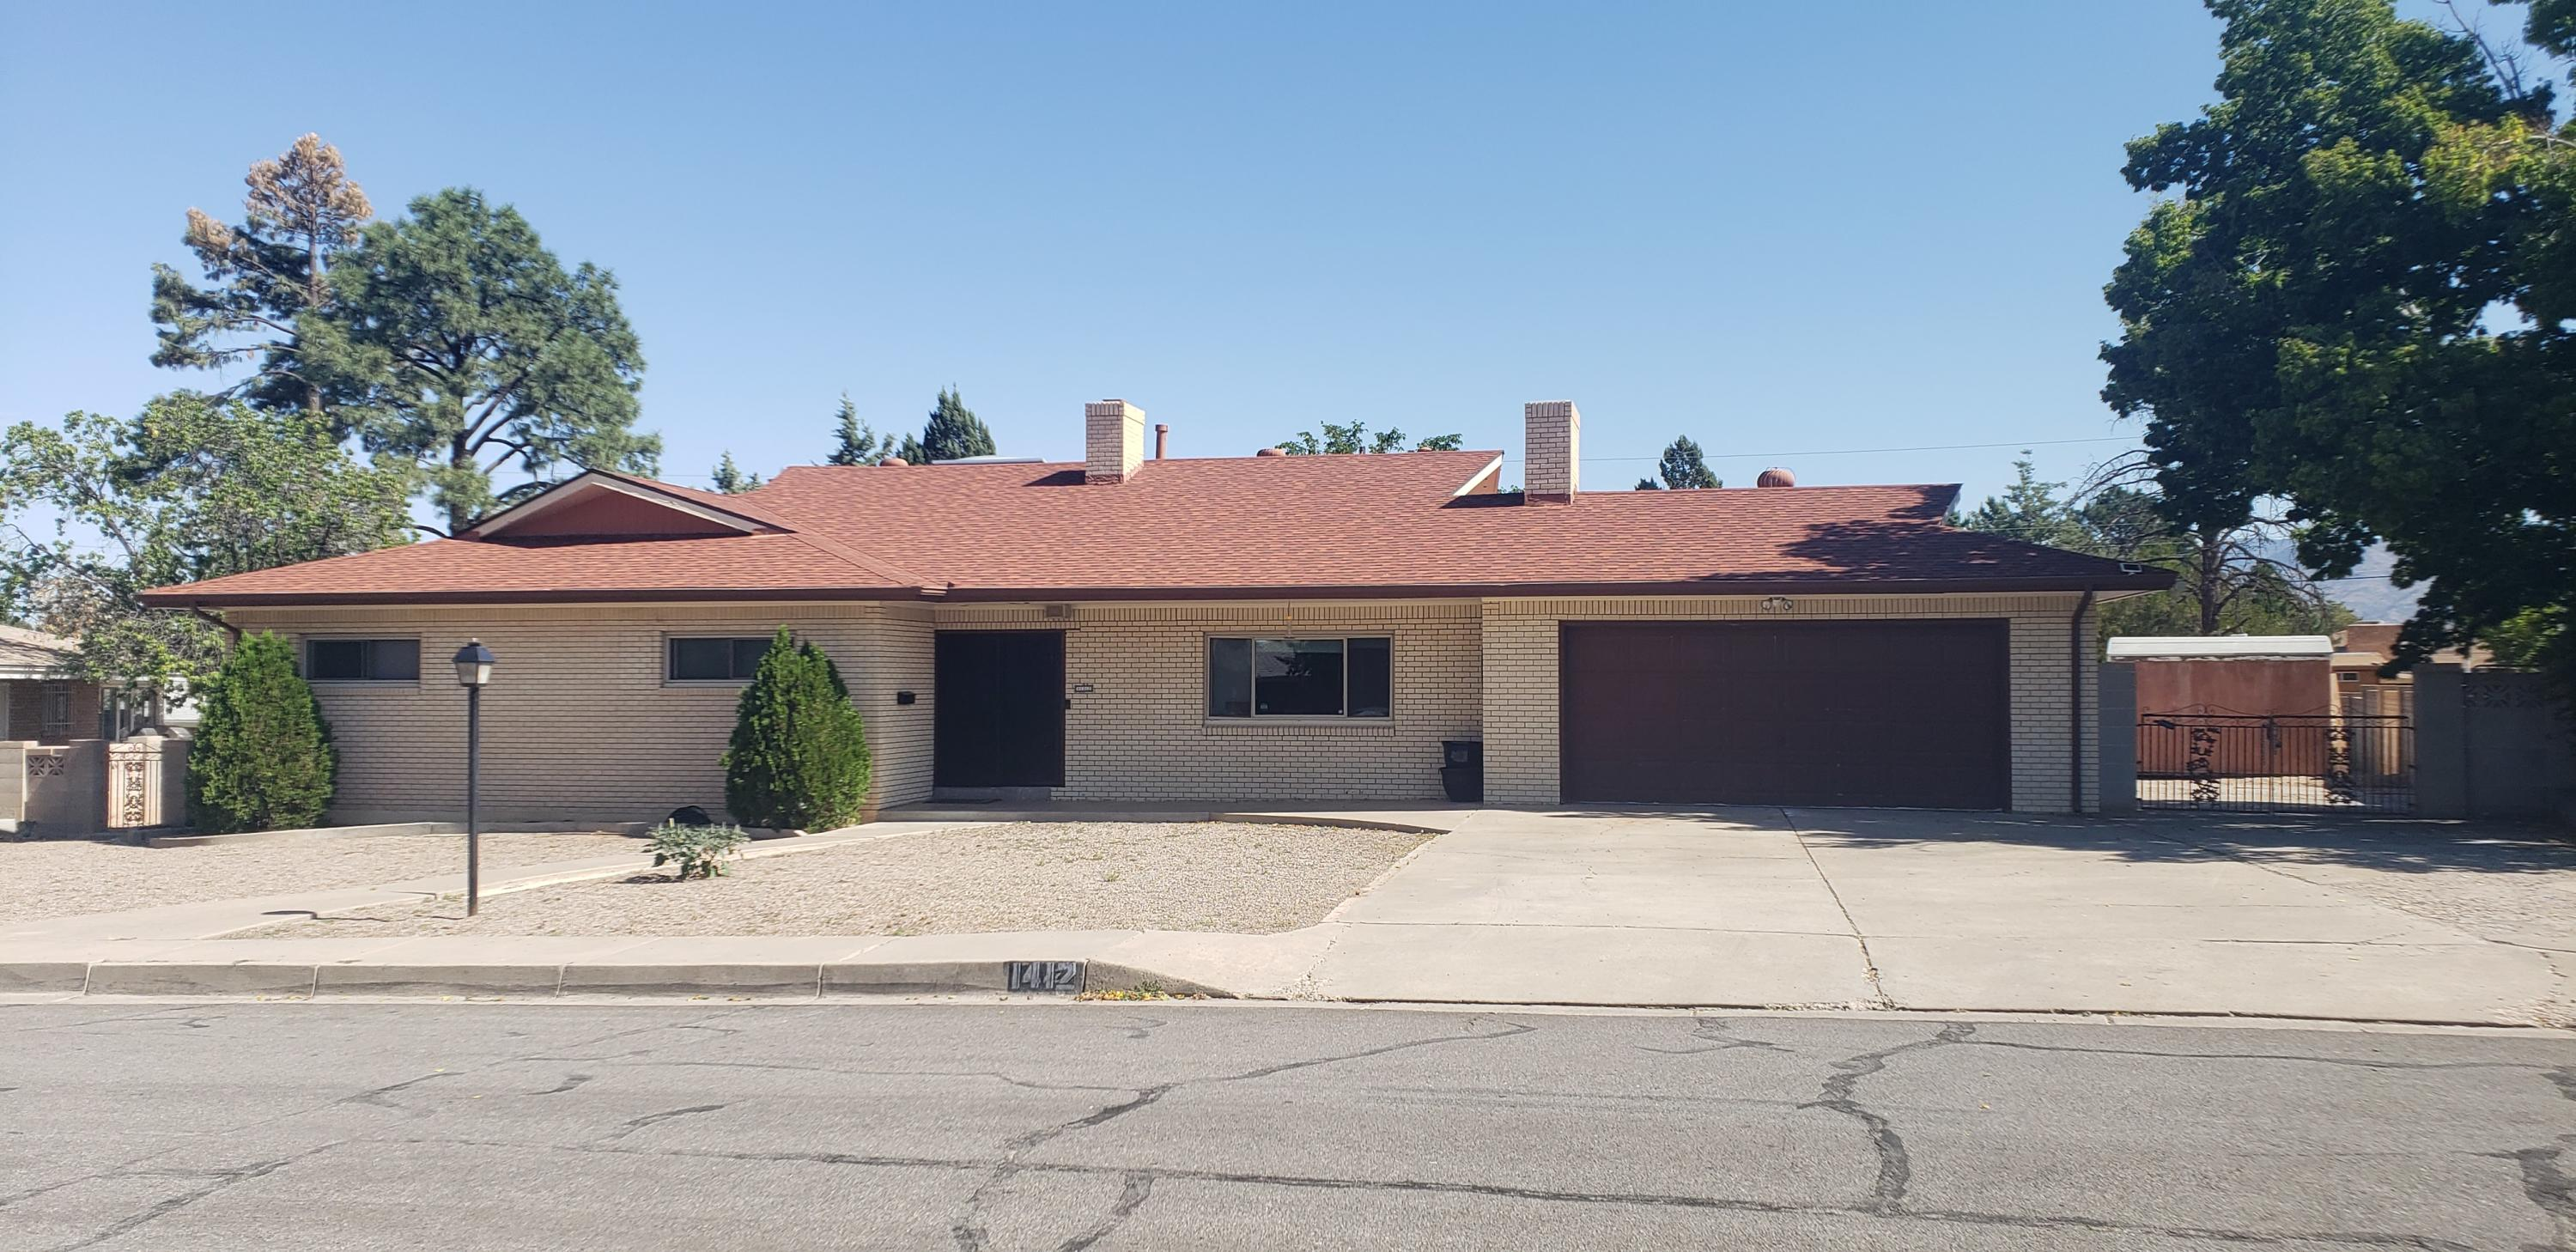 In the Desirable Siesta Hills Neighborhood all the expensive stuff is done! 2 Refrigerated air units and 2 furnaces (2016). Newer windows, New roof in Oct. 2018, 2 water heaters in 2016. 2 master suites or in-law quarters with separate entrance. 2 living areas, breakfast nook, and formal dining room. heated, enclosed sunroom. Laminate floors in living room and bedrooms. Beautiful tile from mexico in the rest. 2 Laundry areas, one in the kitchen and one in the utility closet in the living room. Backyard access with lots of concrete. Huge yard with basketball hoop. shade trees, and storage shed. All the bedrooms have ceiling fans. living room has vaulted ceilings and skylights  Needs a little TLC, but so much potential and all cosmetic, priced accordingly.